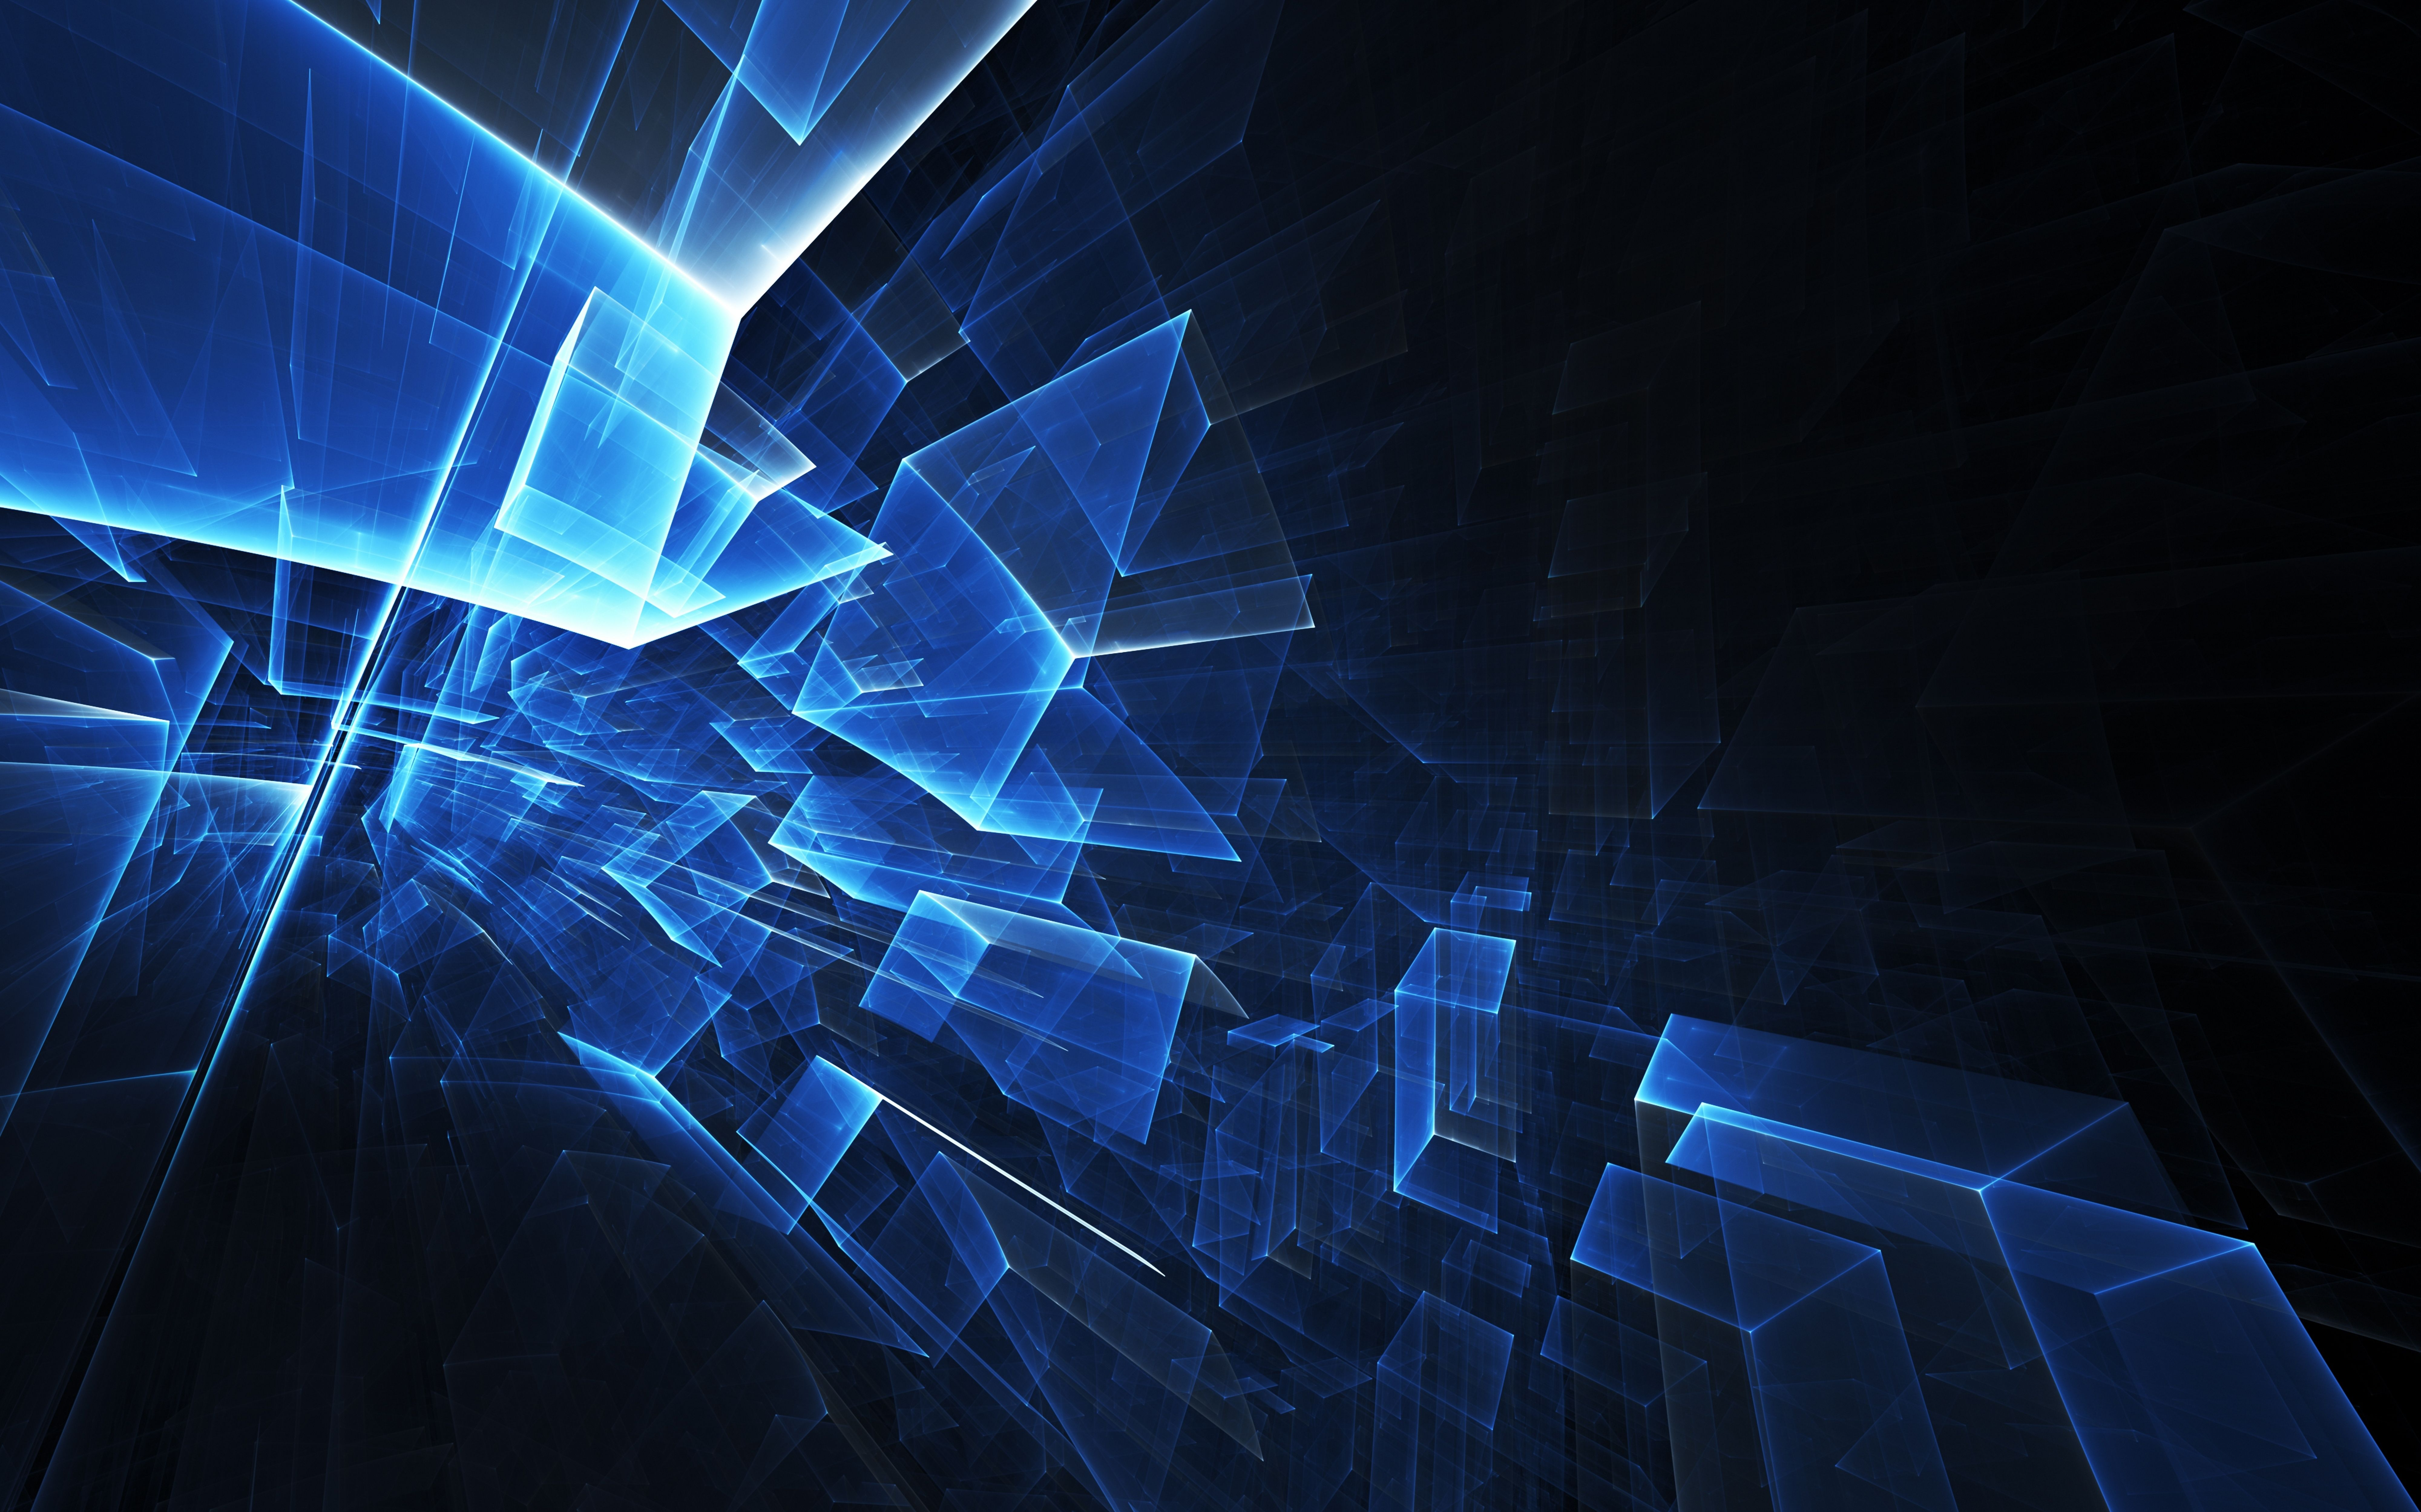 4k 3d Abstract Wallpapers Top Free 4k 3d Abstract Backgrounds